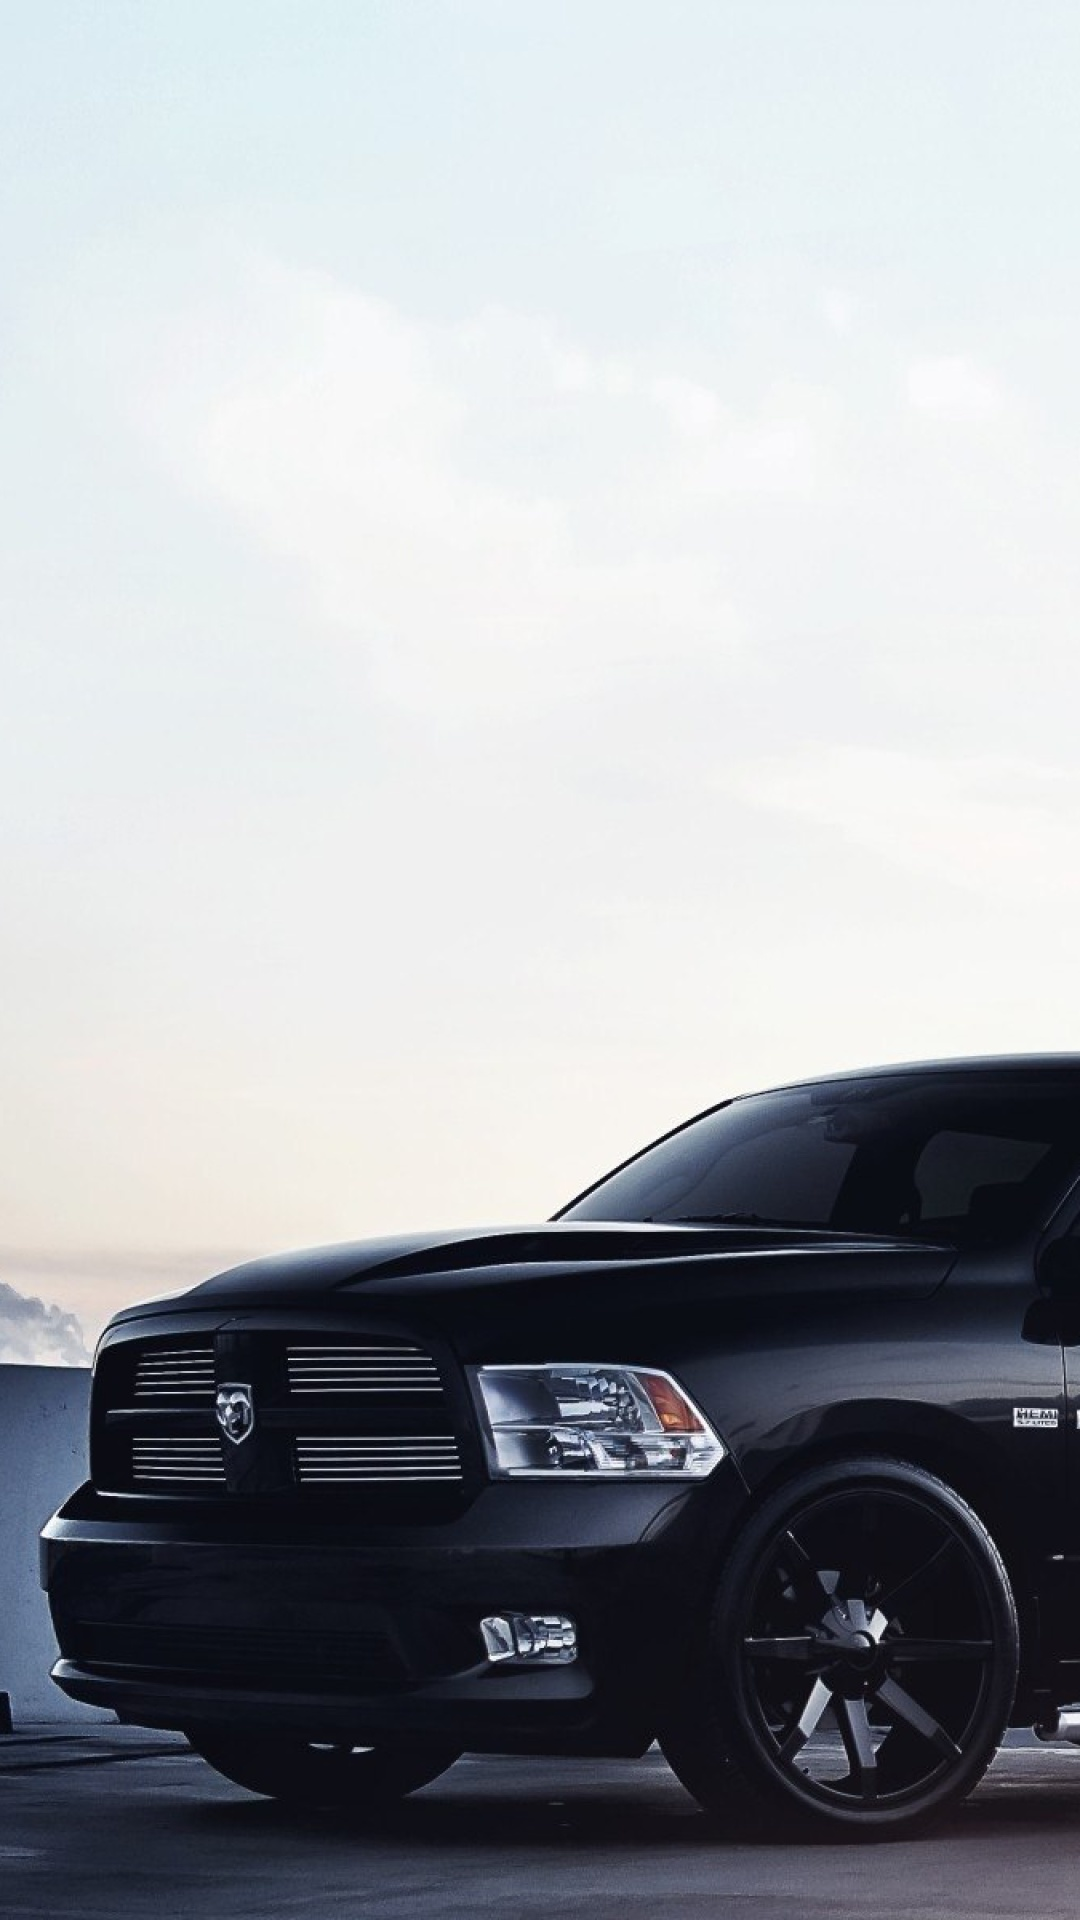 Dodge RAM 1500 wallpaper 1080x1920